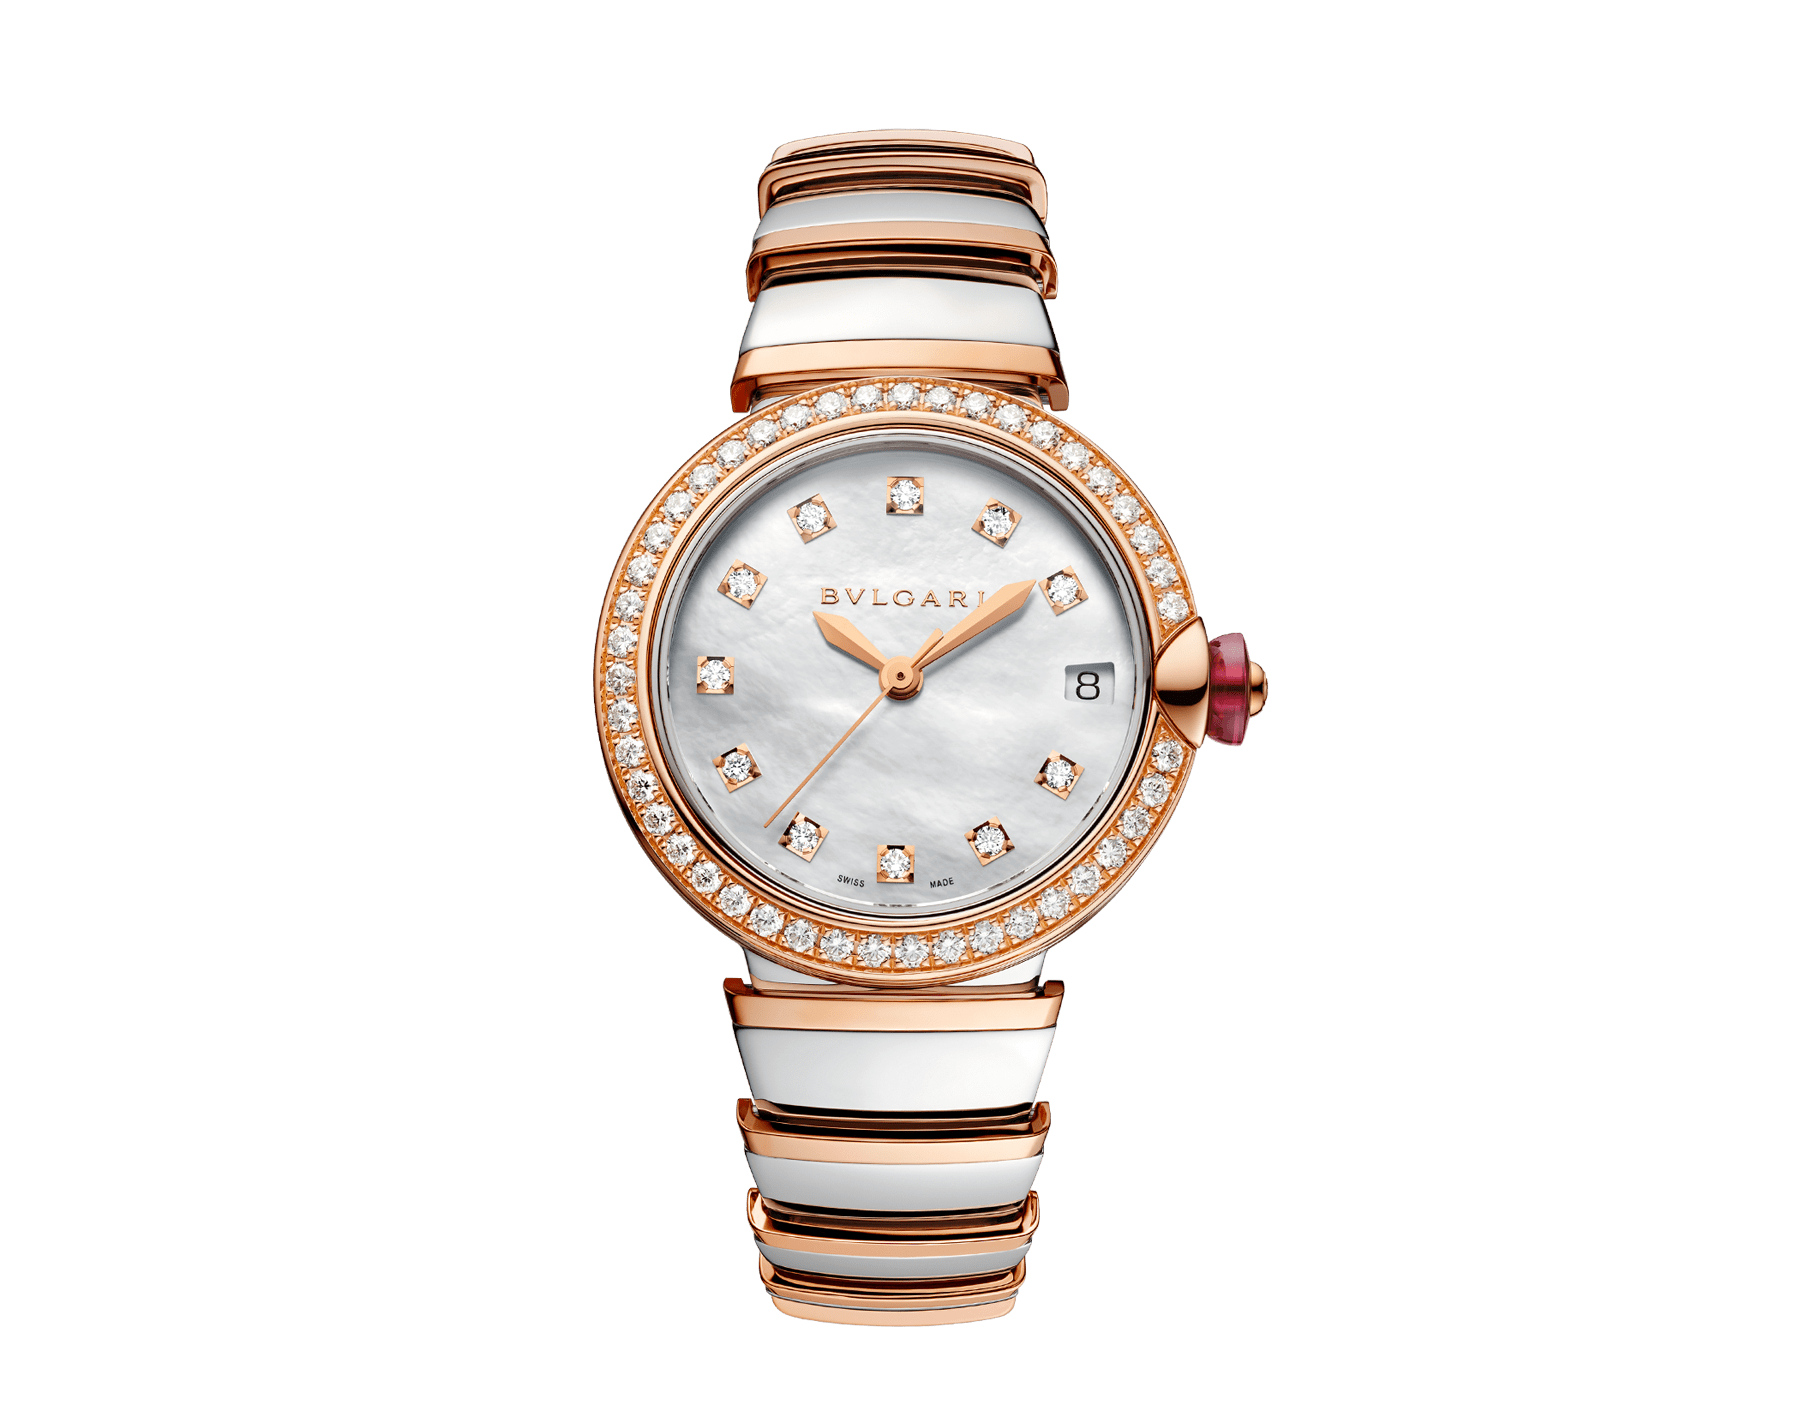 LVCEA watch in 18kt rose gold and stainless steel case and bracelet, set with diamonds on the bezel, and white mother-of-pearl dial with diamond indexes. 102476 image 1